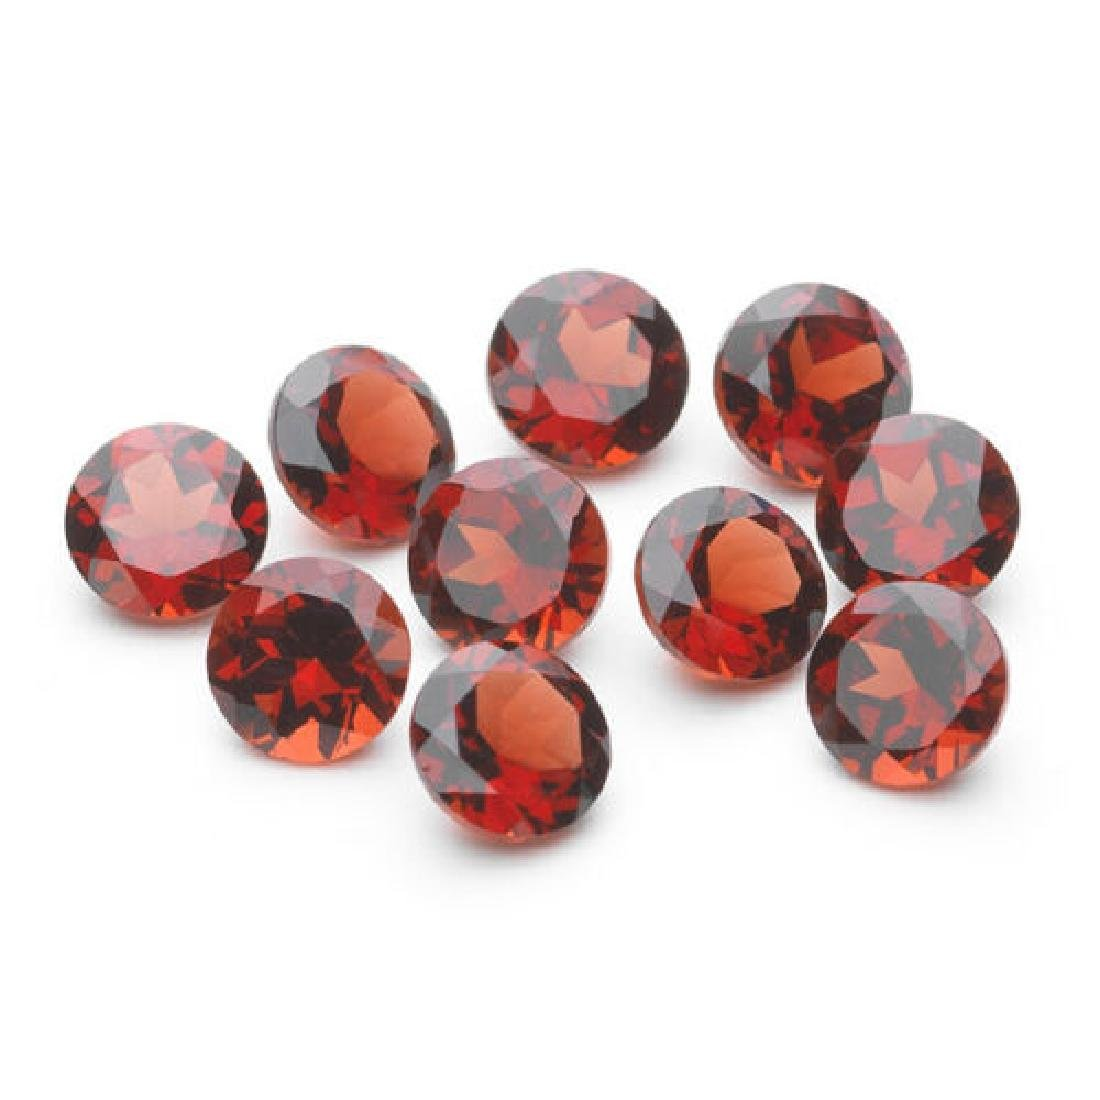 Natural Red Garnet 5mm Faceted Round Cut Lot Loose AAA